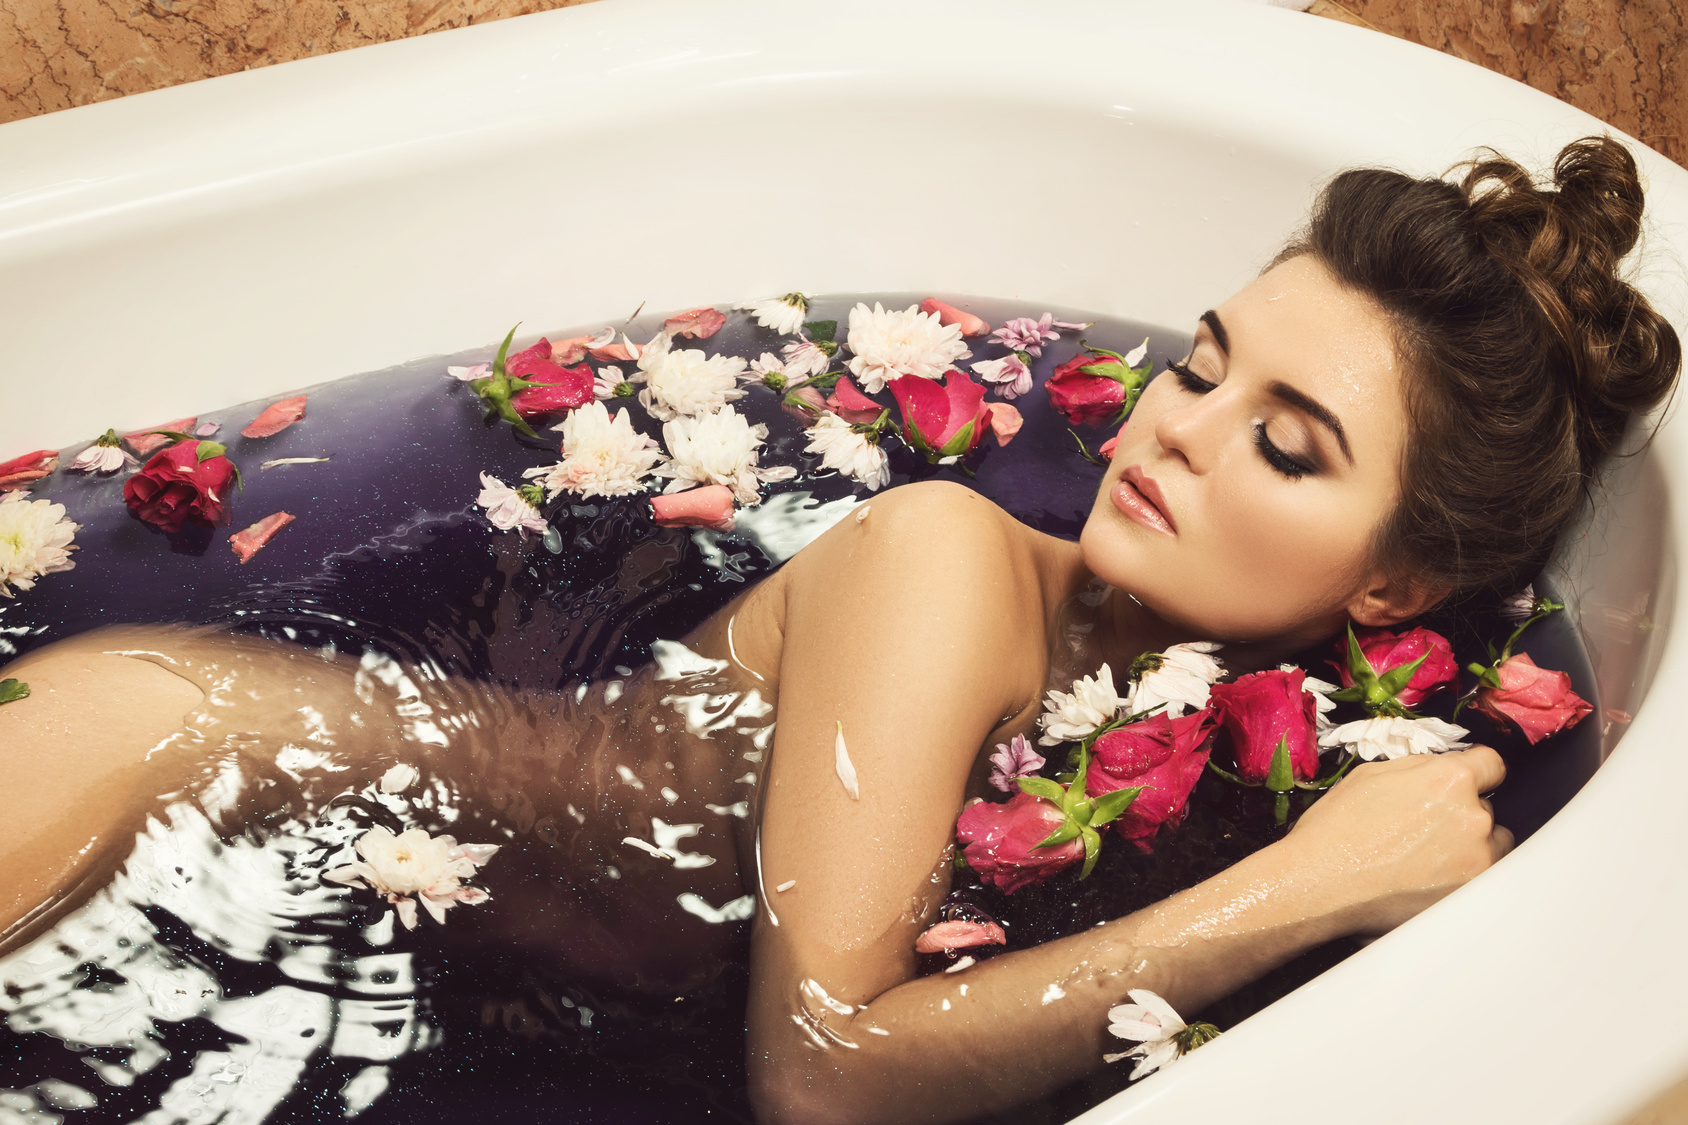 Beautiful woman in the bath with flowers. Rejuvenation and relaxation concept.